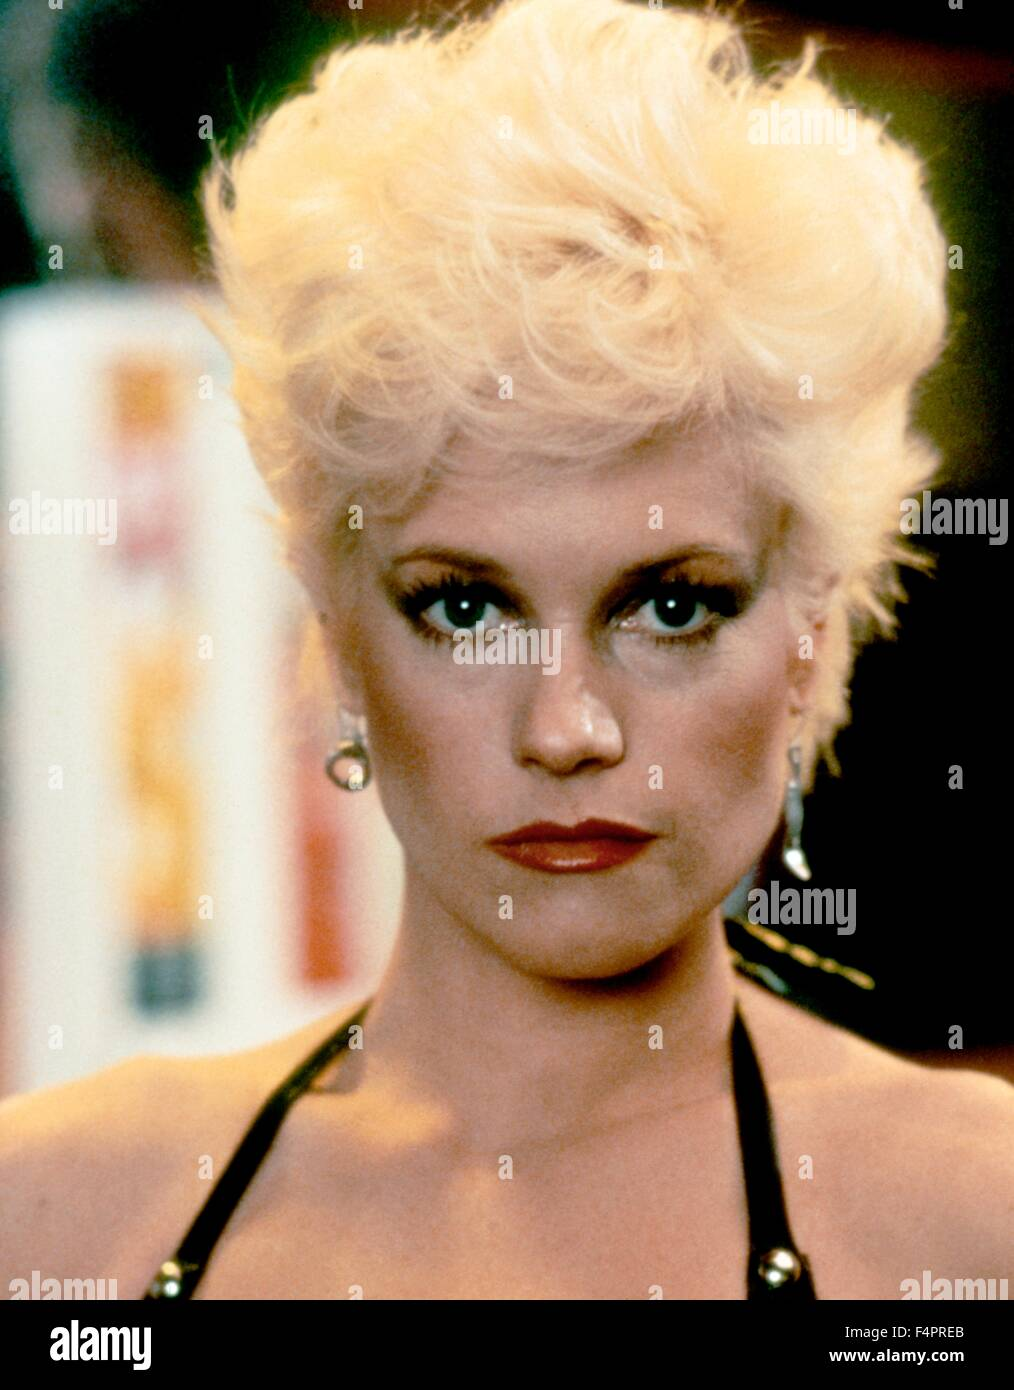 Melanie Griffith / Body Double / 1984 directed by Brian De Palma  [Columbia Pictures] - Stock Image